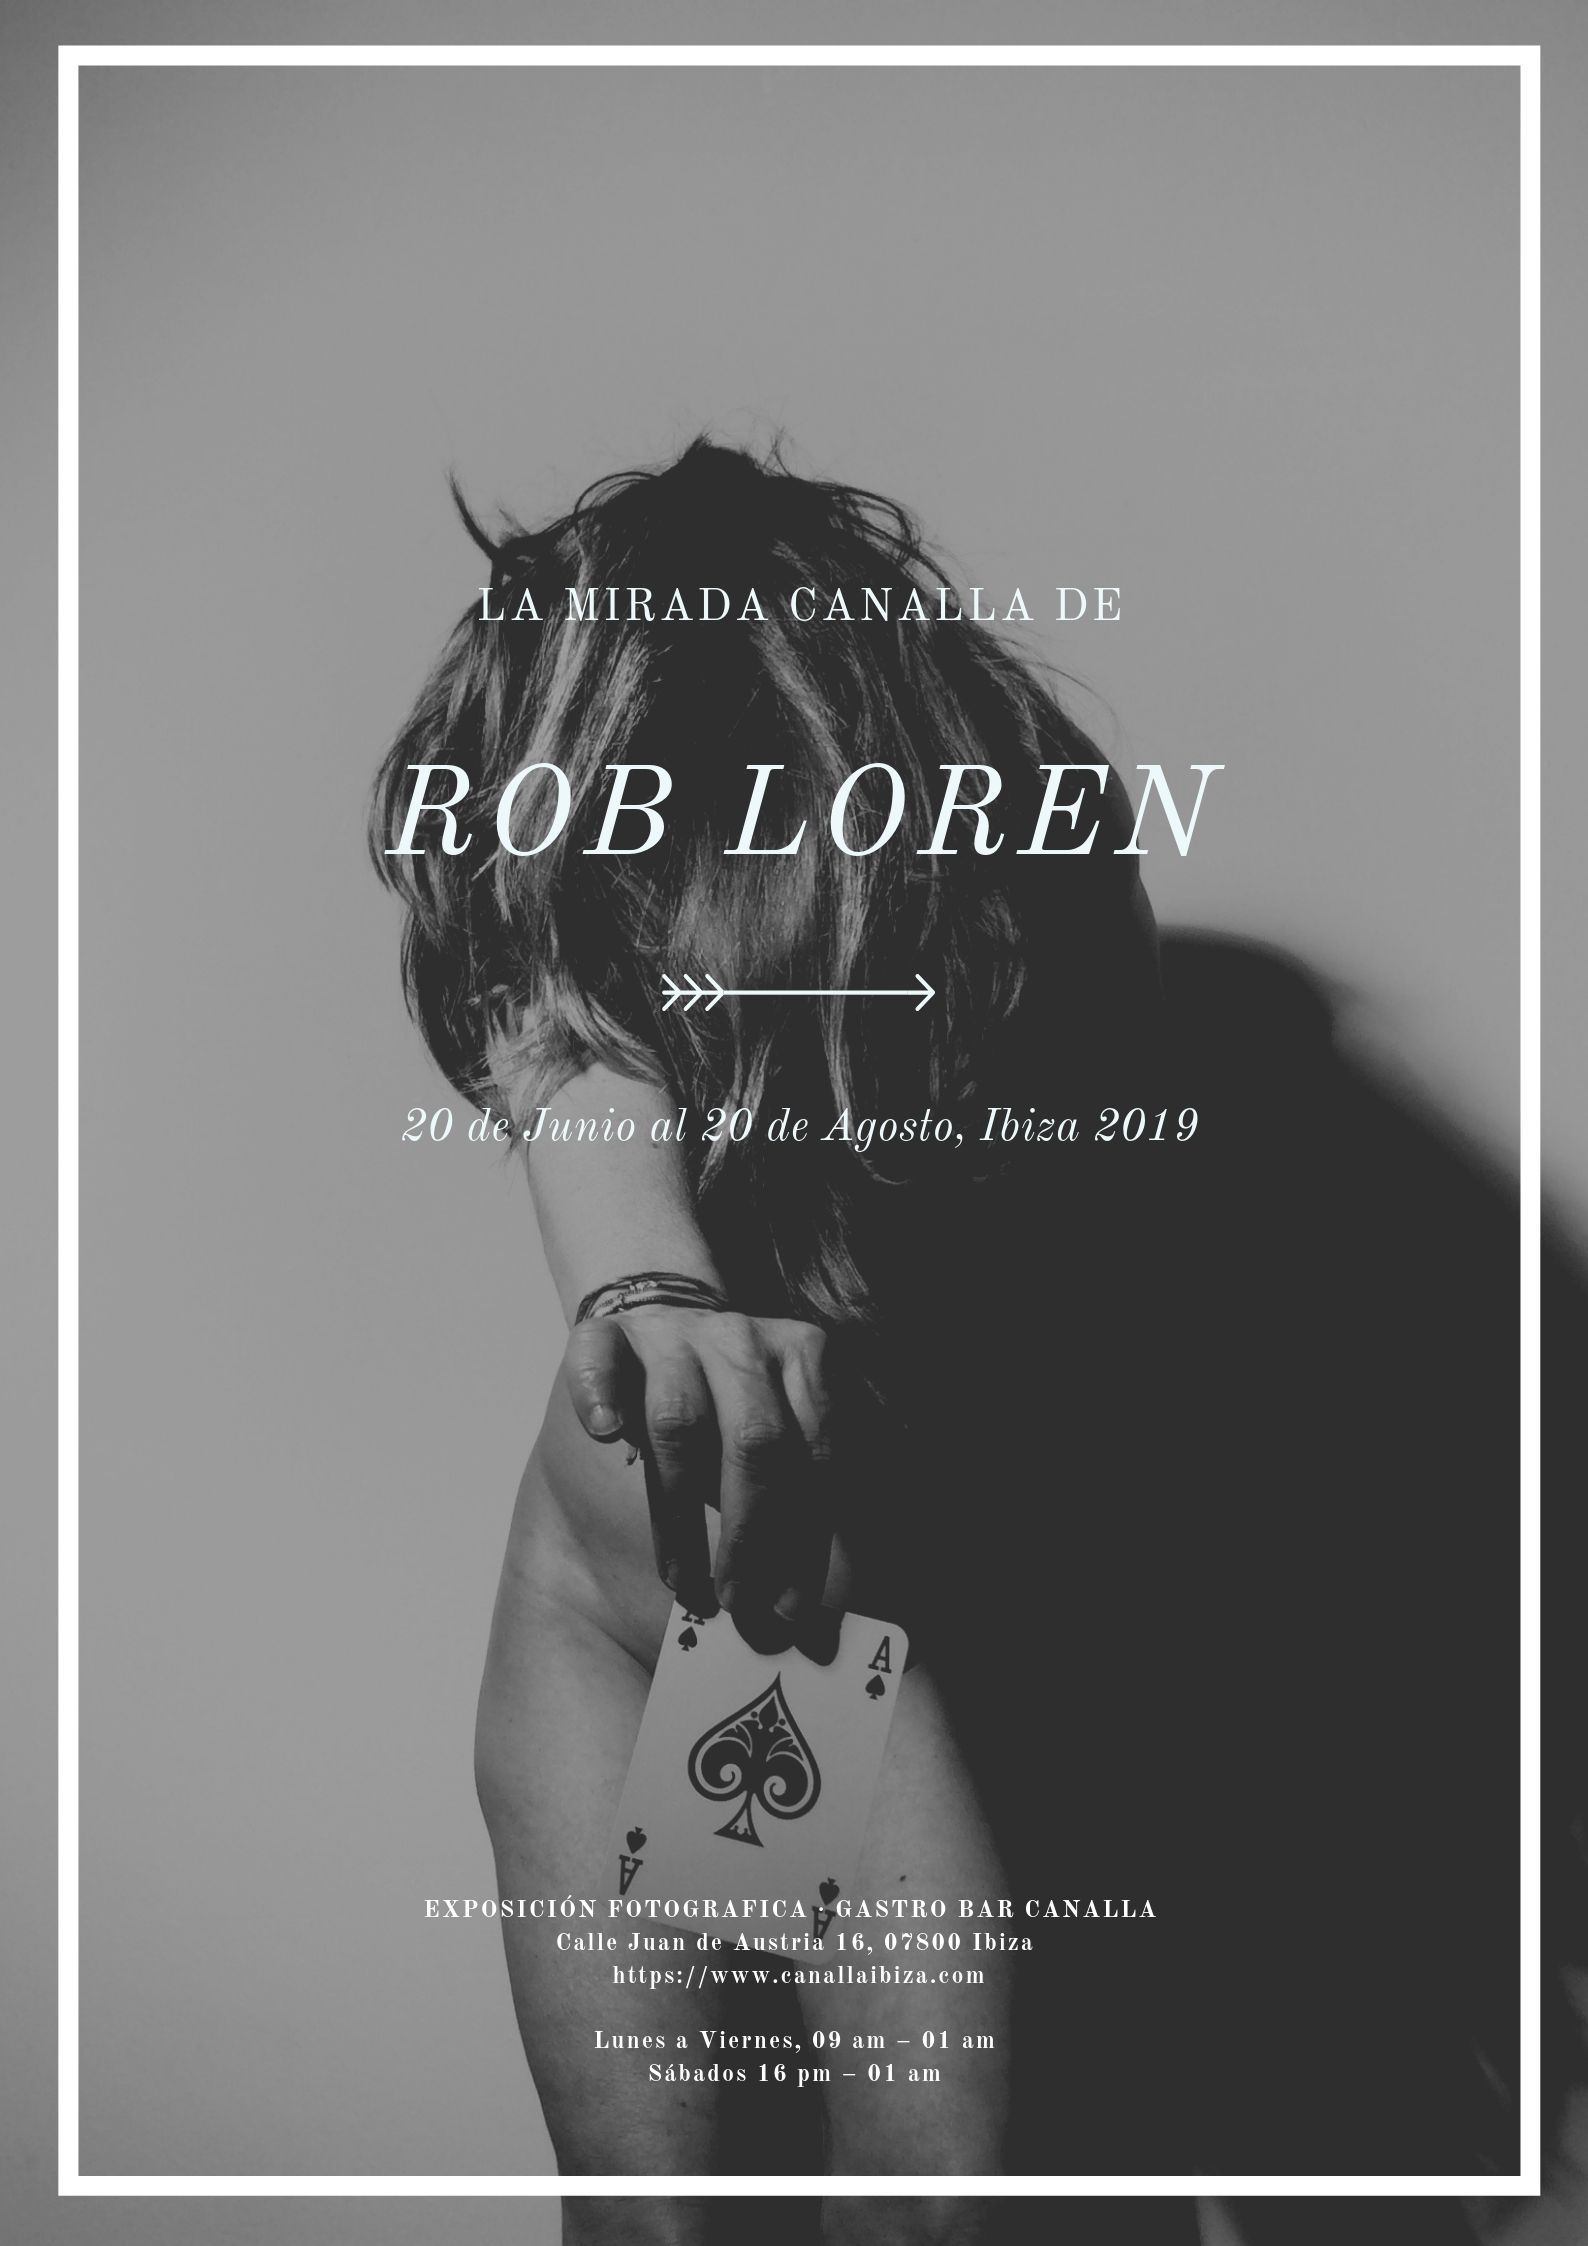 Rob Loren - Next 20th of June, Thursday, we will inaugurate a Photography exhibition at the Gastro Bar Canalla Ibiza with the aim of bringing our clients closer to the vision of this artist and his environment, where he has been working for years. The artist and us from the Gastro Bar Canalla want to invite you to the inauguration and/or to visit with calm the exhibition that will remain until August 20, 2019.La Mirada Canalla of Rob Loren. Roberto Lorenzo aka Rob Loren is a visual artist and investigator of creative thought that lives and works between the Cantabrian and the Mediterranean. In artistic jargon, Rob is the glance, the intelligent and slightly scoundrel gaze pregnant with sensibility and captivating impulses. A combination of tender sincerity, almost poetic, with a rawness and rebellious attitude, always trying to be honest, believe in what he does and follow his path. The son of a photographer who fell in love with a Miss and model from Pertegaz, Loren's artistic film comes from his family and perhaps this is the key to his freshness. He is a true dream hunter, to be interpreted with any audiovisual technique and captured in any format. In this case a combination of black and white images with a rogue look, where the observer will have to do the exercise of dividing the observation into two segments: the denotation and the connotation. And you, what do you dream of? GASTRO BAR CANALLA PHOTO EXHIBITION. INAUGURATION THURSDAY 20 JUNE FROM 19 TO 21H